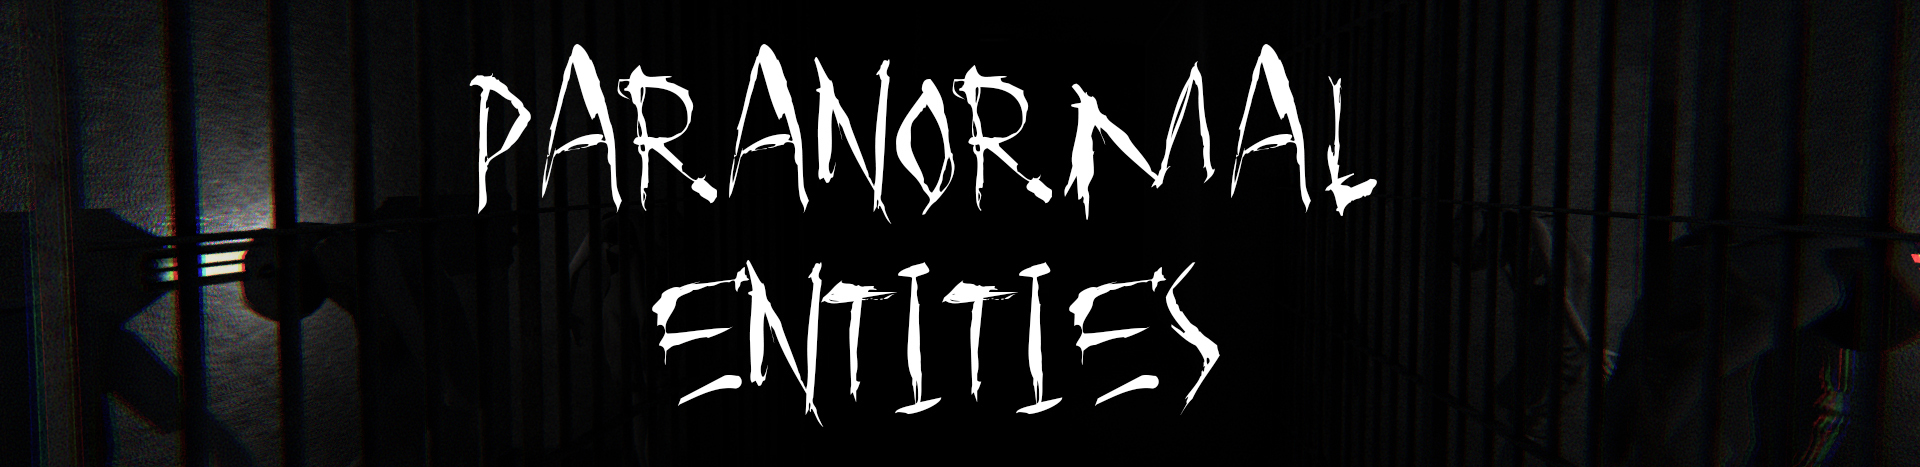 Paranormal Entities